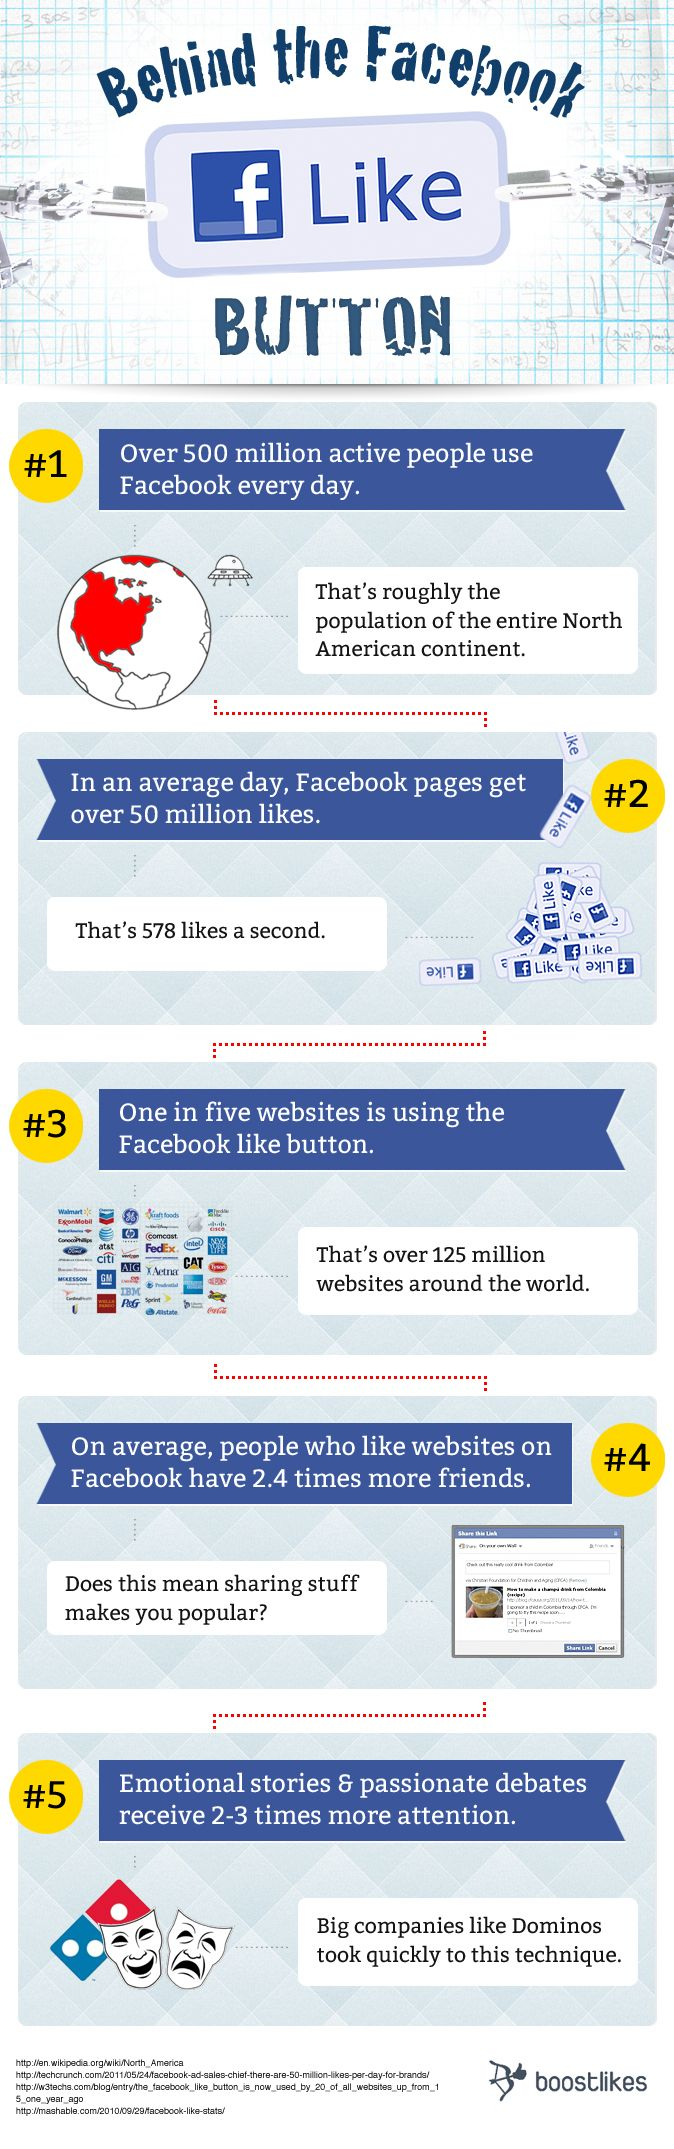 Behind the #Facebook Like-Button | boostlikes.com